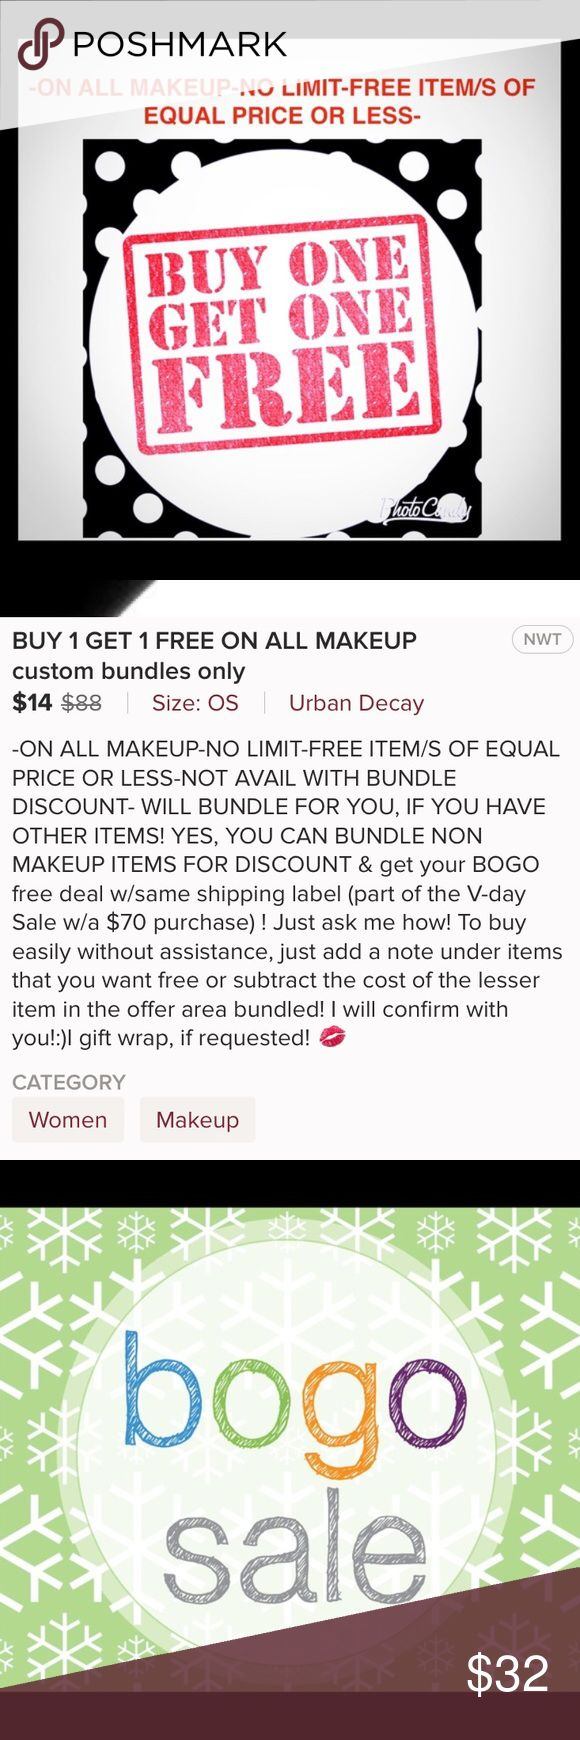 BUY 1 GET 1 FREE ON ALL MAKE-UP! Equal or lesser Simple BOGO FREE SALE! This will require a custom bundle. If you don't have time for a custom bundle just purchase one of these items and make a comment below it on which one you would like for free. Easy PEZ-E! Stress free BOGO FREE, sale! if you don't have time for a custom bundle and you want to purchase 2 and get 2 free,  do the same as there is no limit.  No bundle discount with this BOGO sale.Some items do not have duplicates , so please…